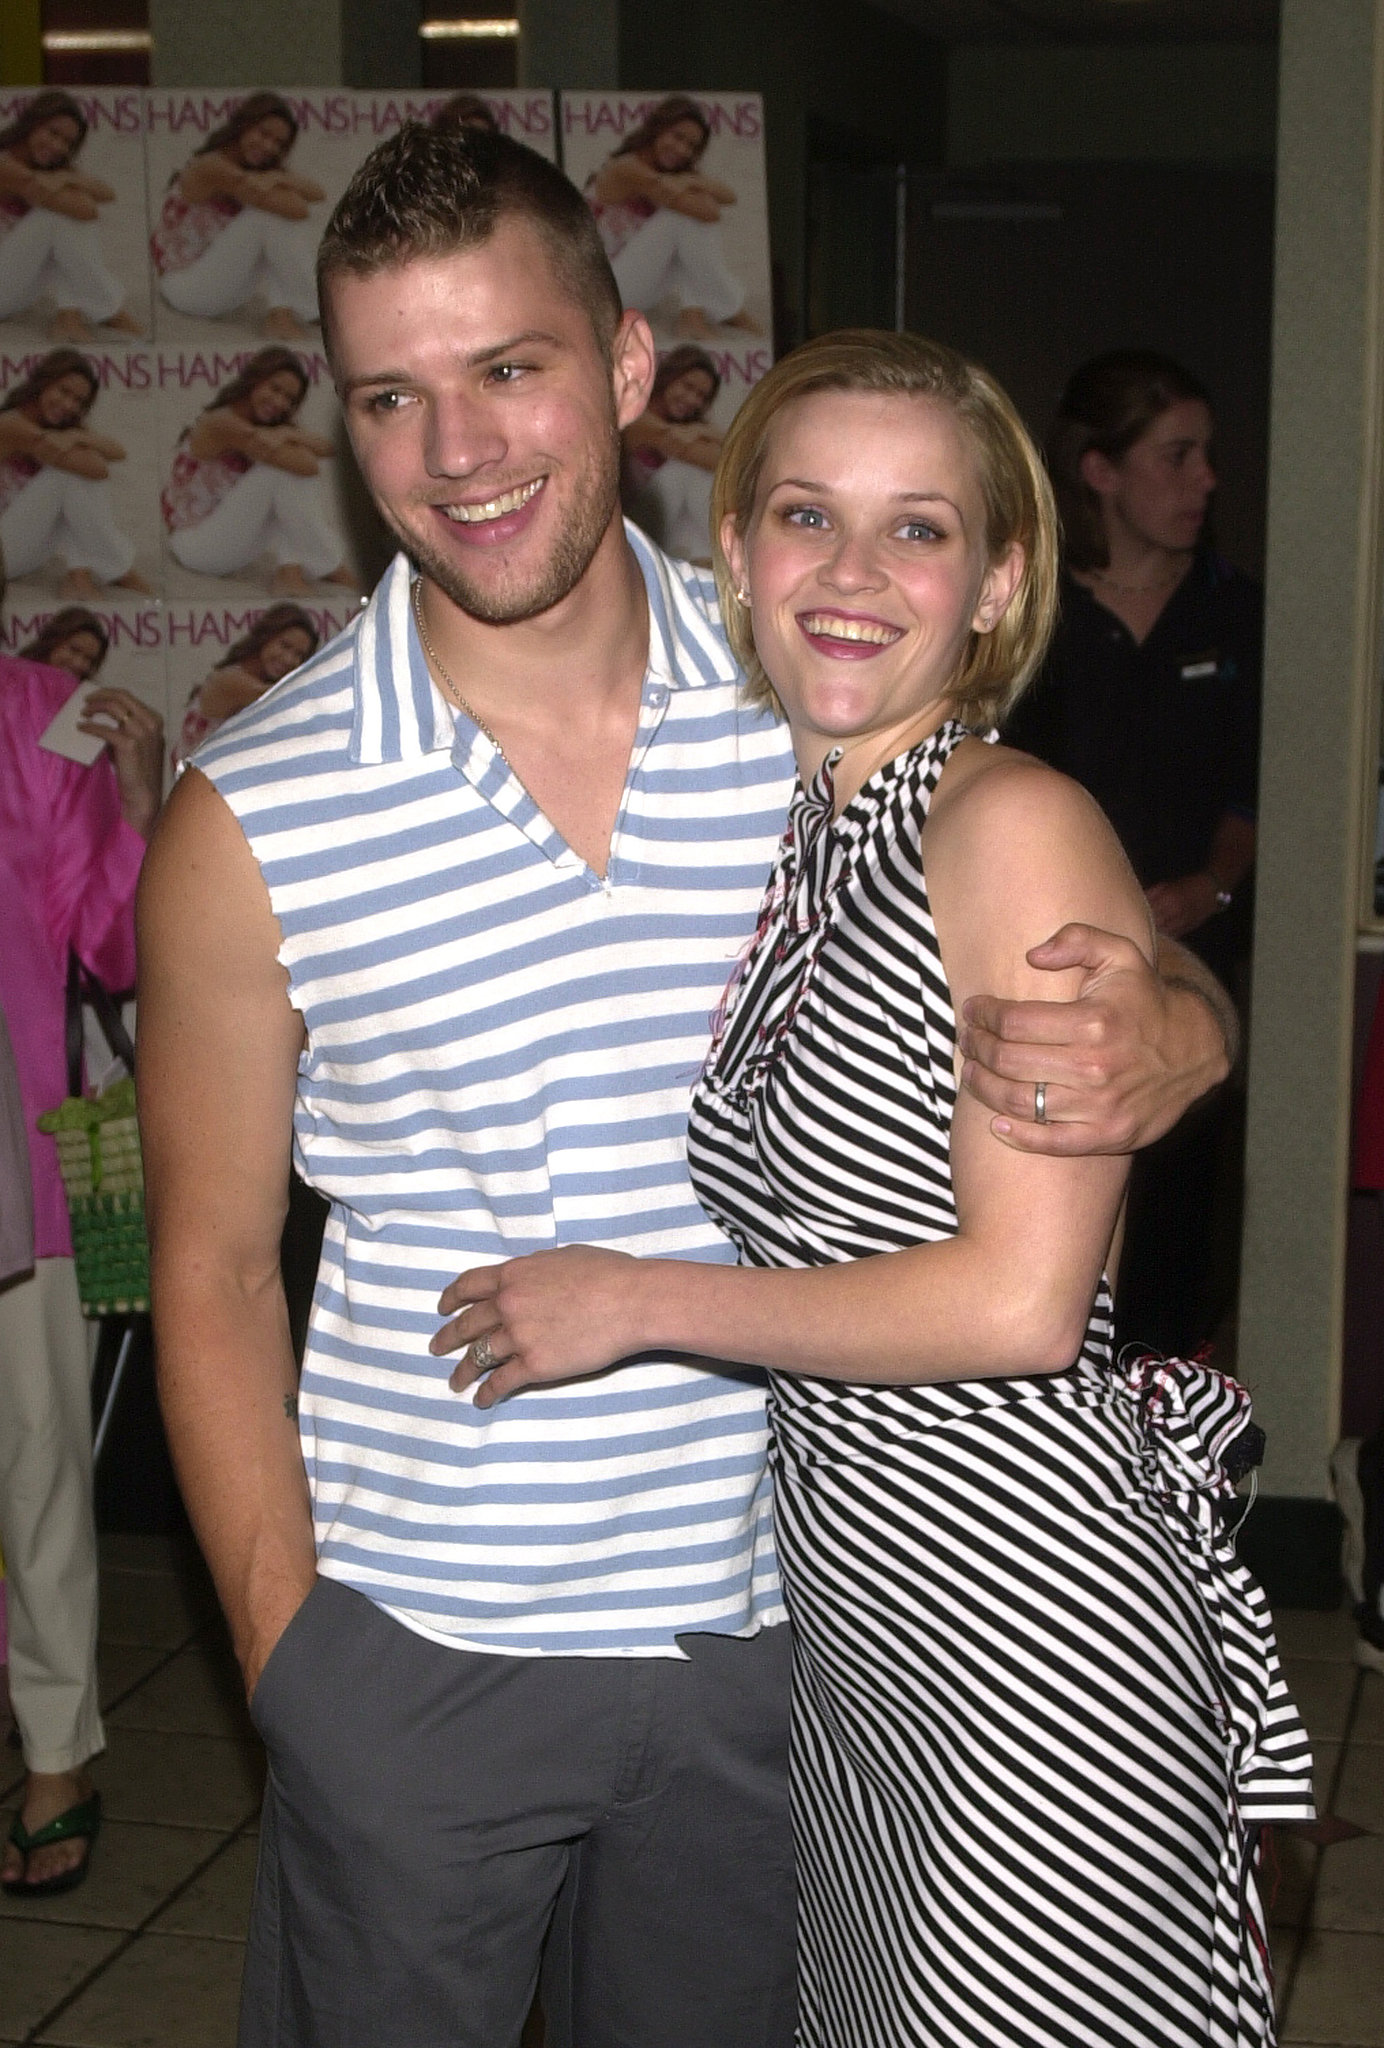 Reese Witherspoon and Ryan Phillippe sported coordinating stripesReese Witherspoon And Ryan Phillippe Kiss